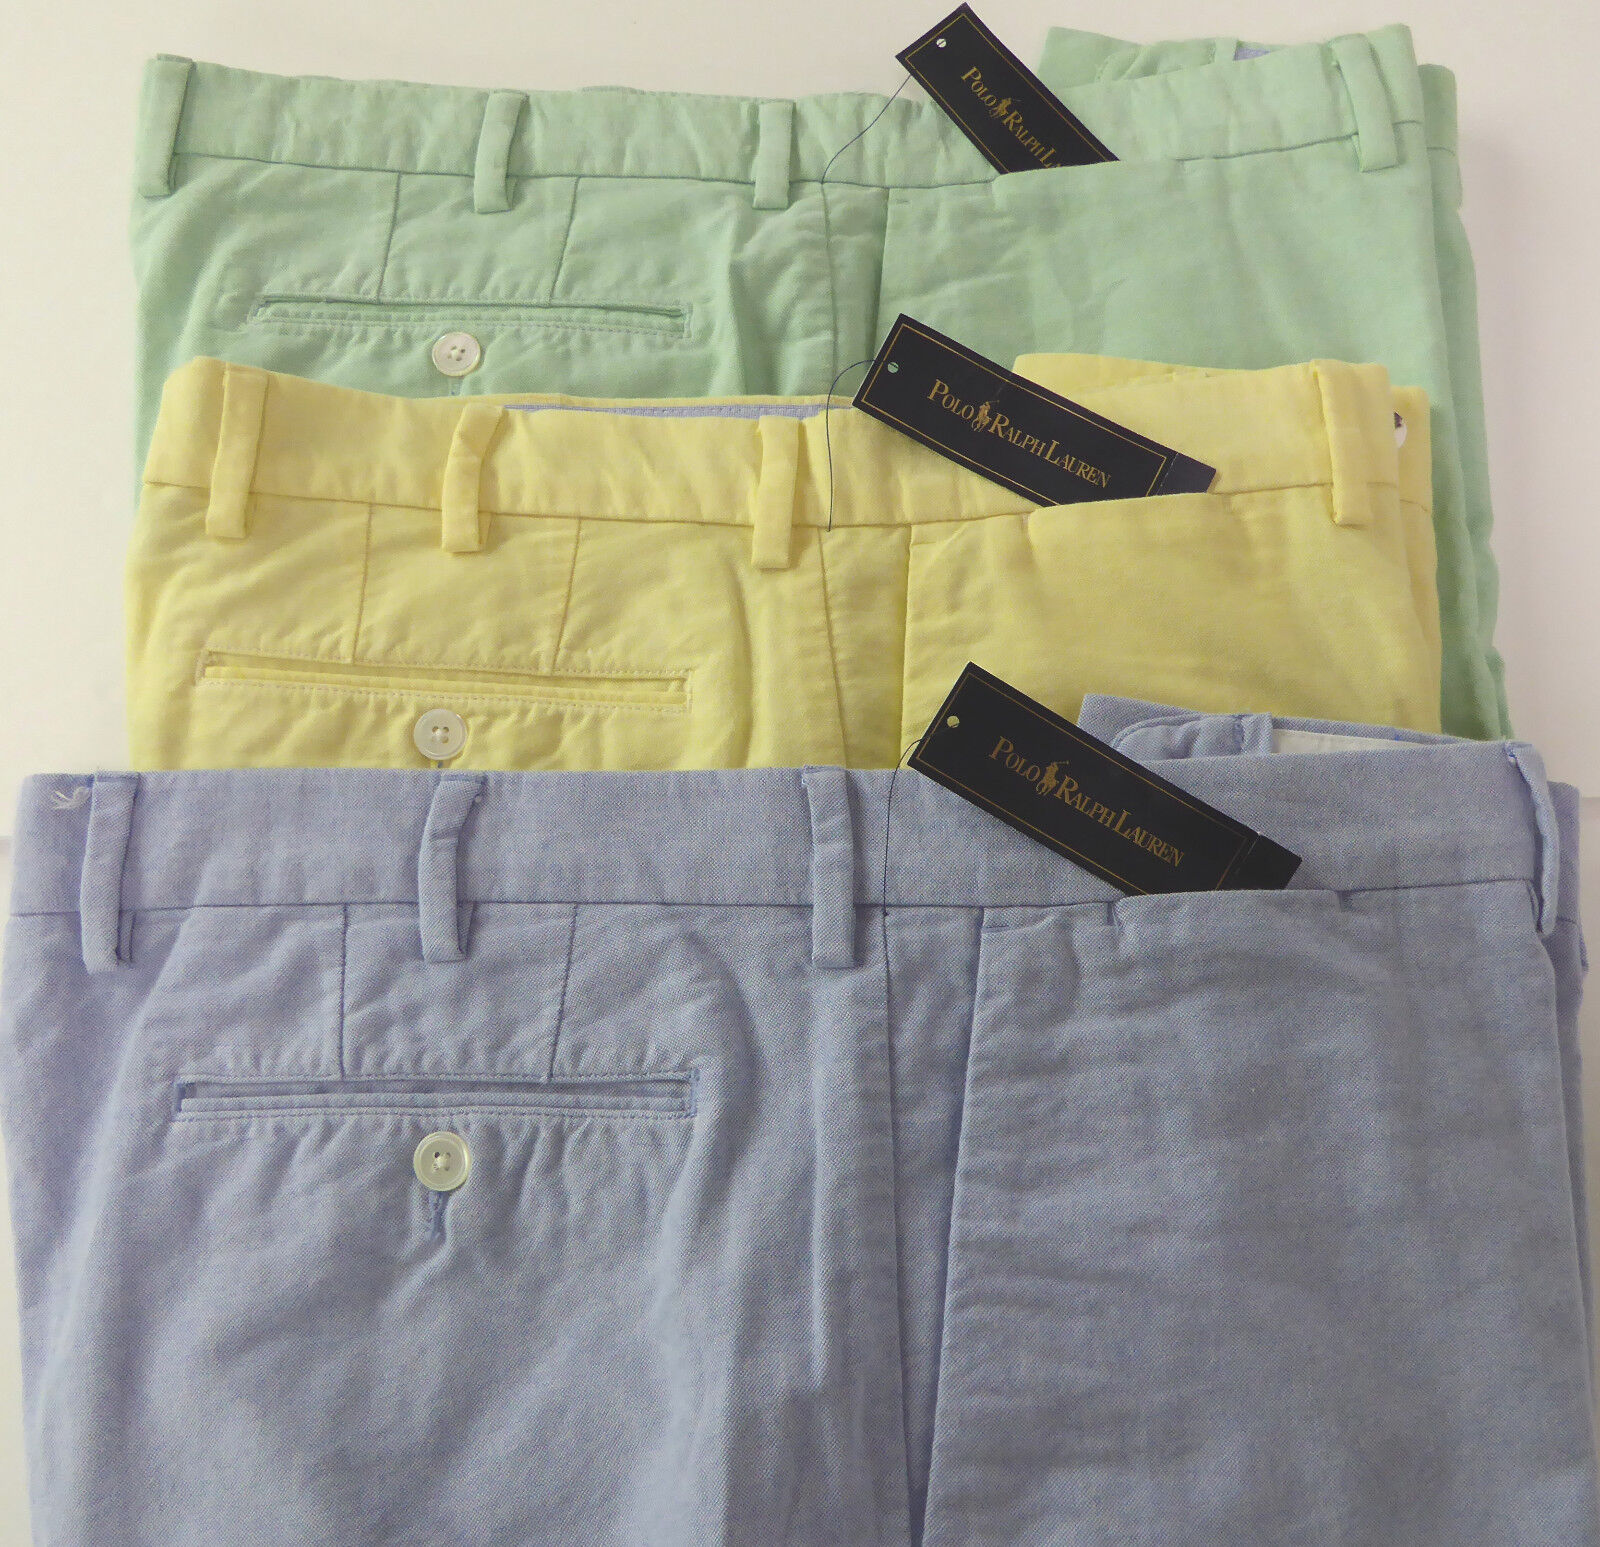 Polo Ralph Lauren Flat Front Oxford Cotton Shorts  3 colors Green bluee NWT